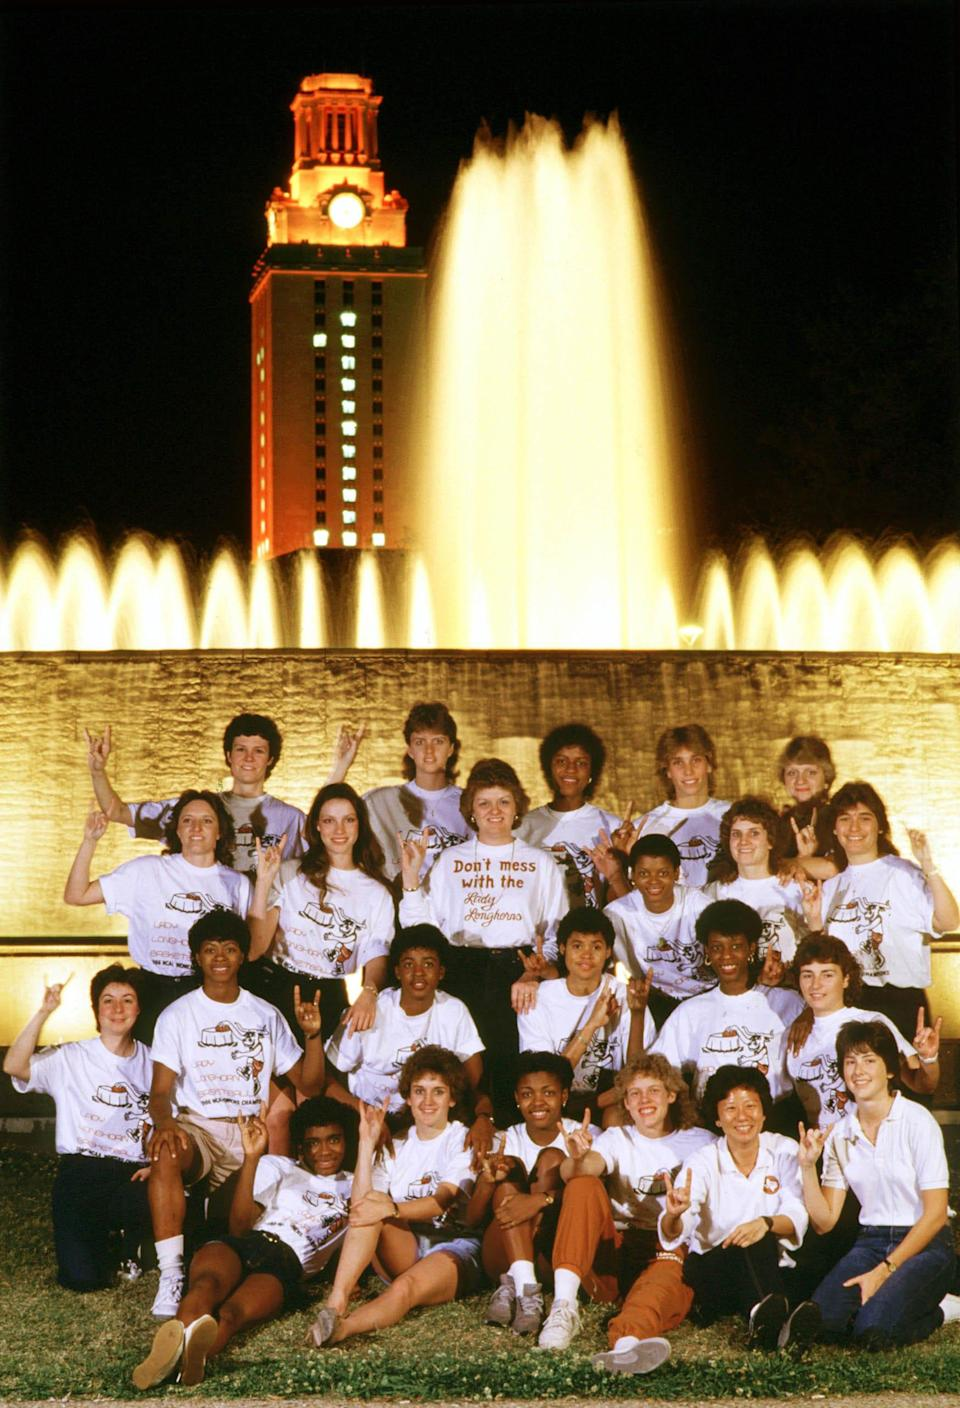 In a photo provided by the school, the 1986 University of Texas Lady longhorns basketball team.